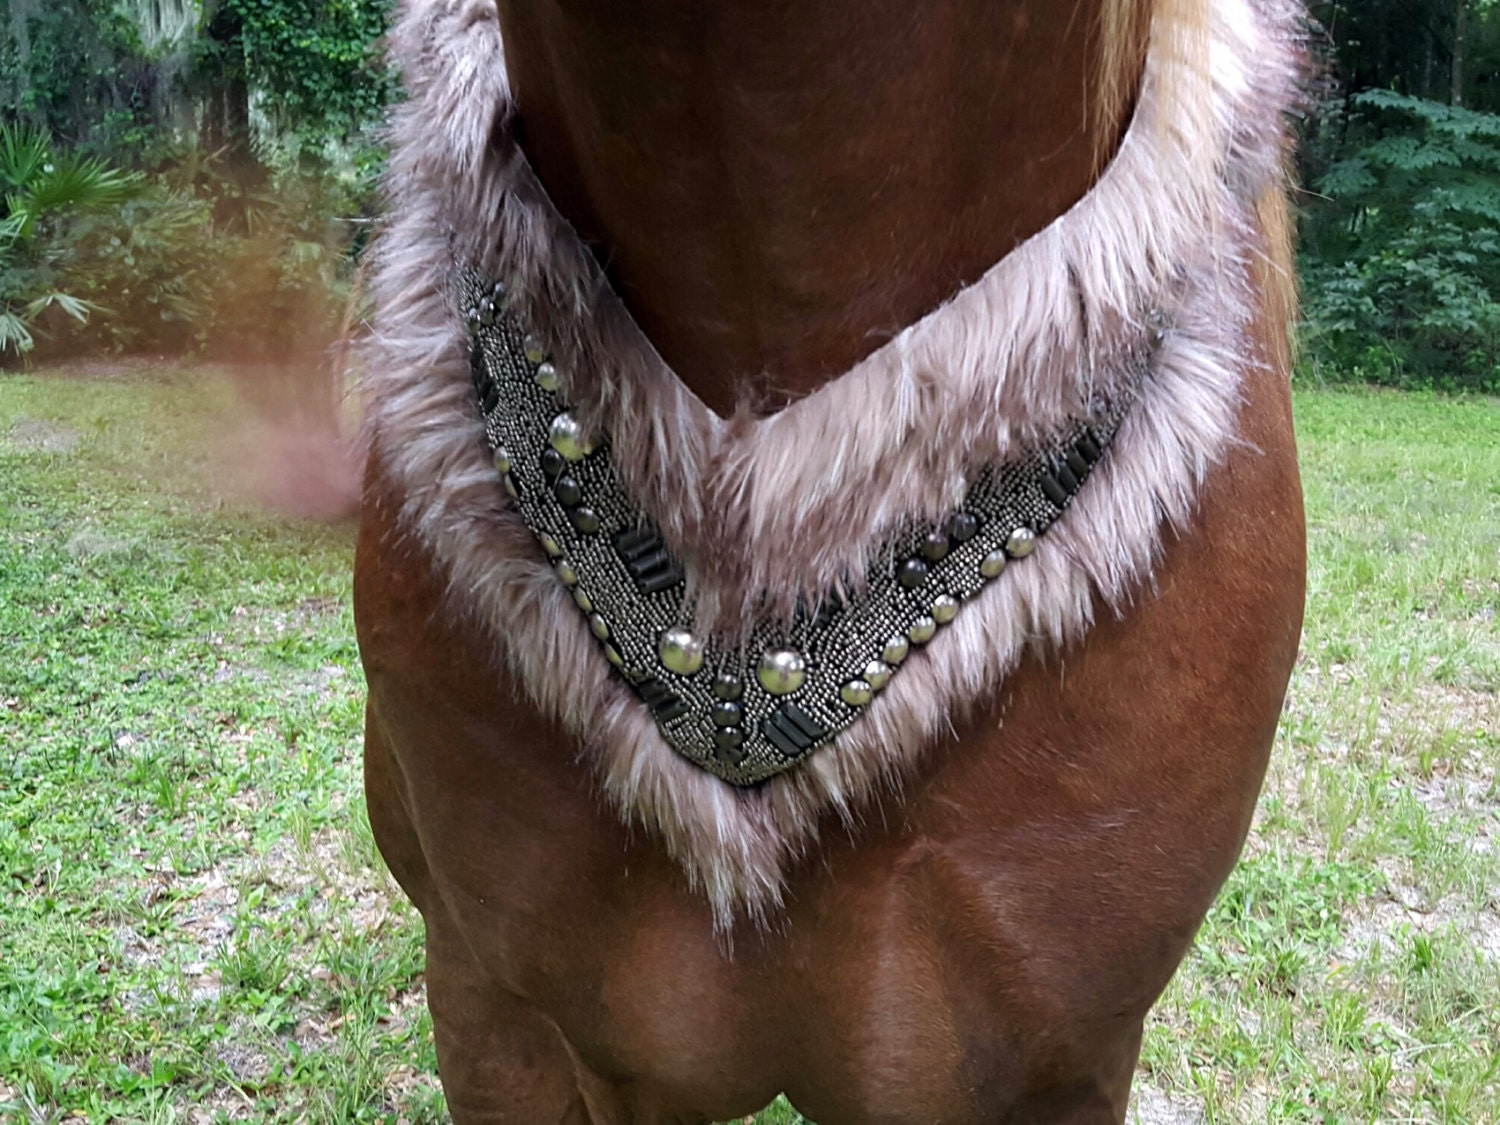 Fur And Armor Equine Necklace / Breast Collar Warrior